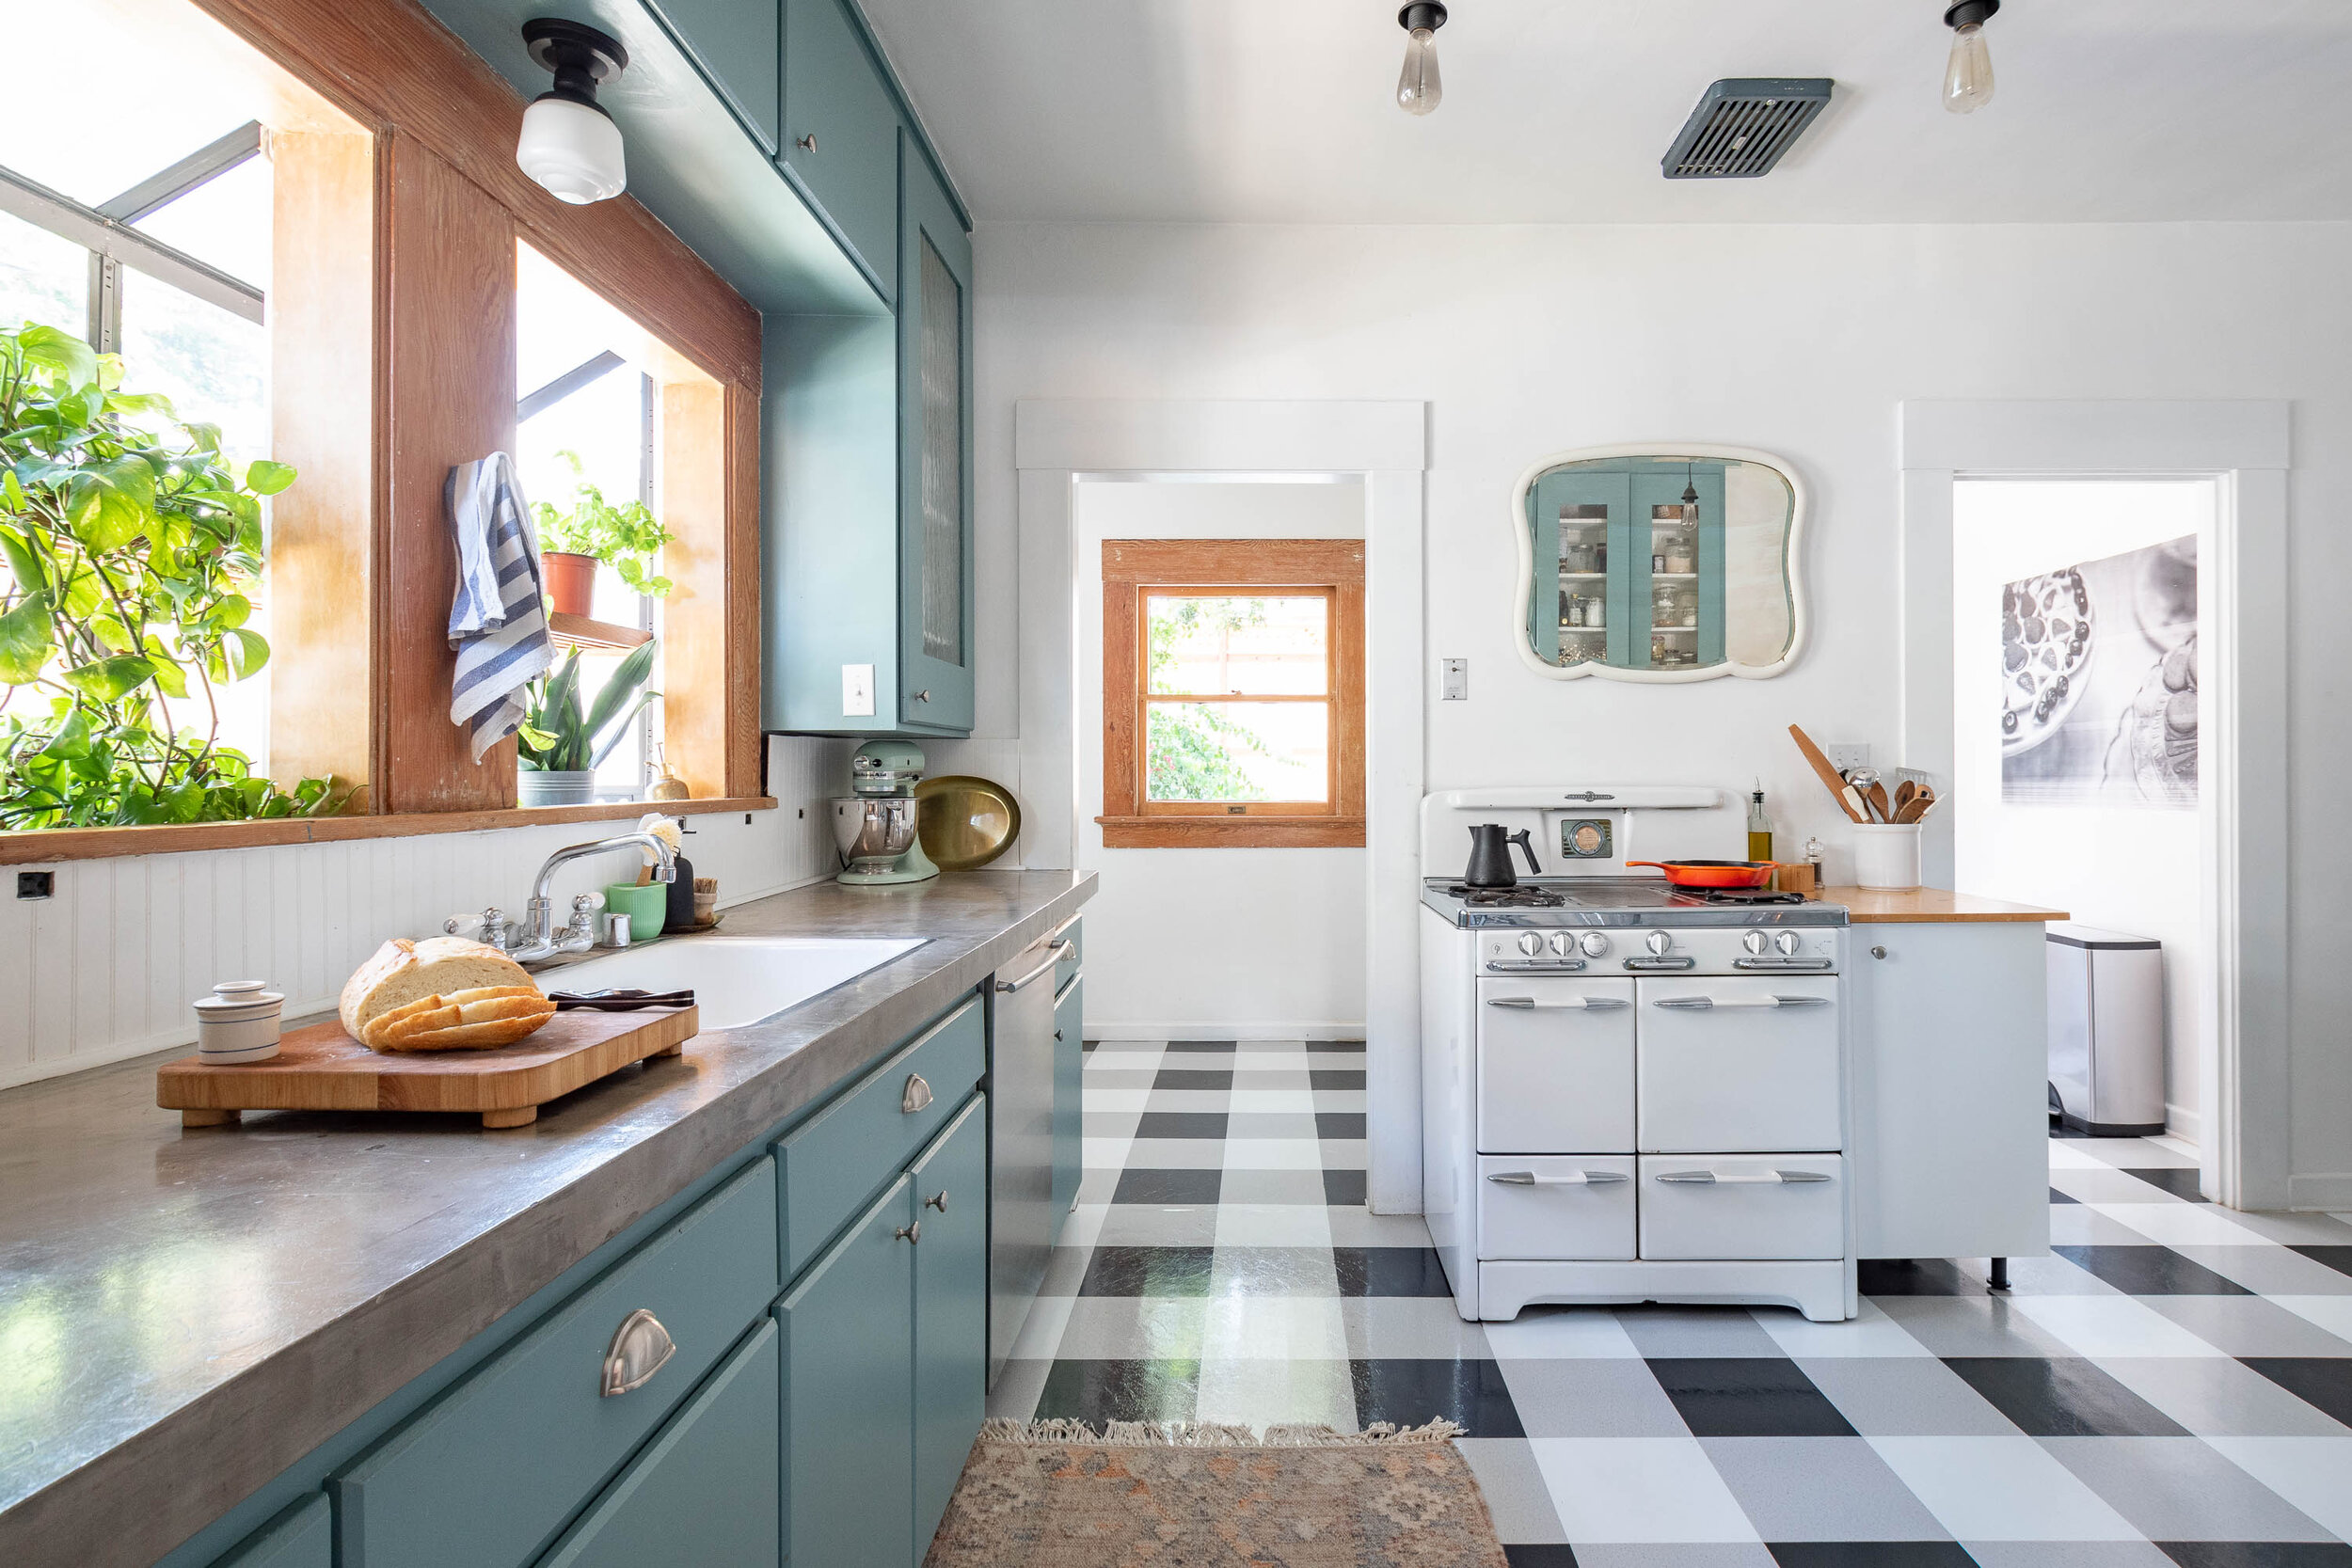 The Gold Hive $600 Kitchen Makeover Craftsman Bungalow Retro Style-2-2.jpg